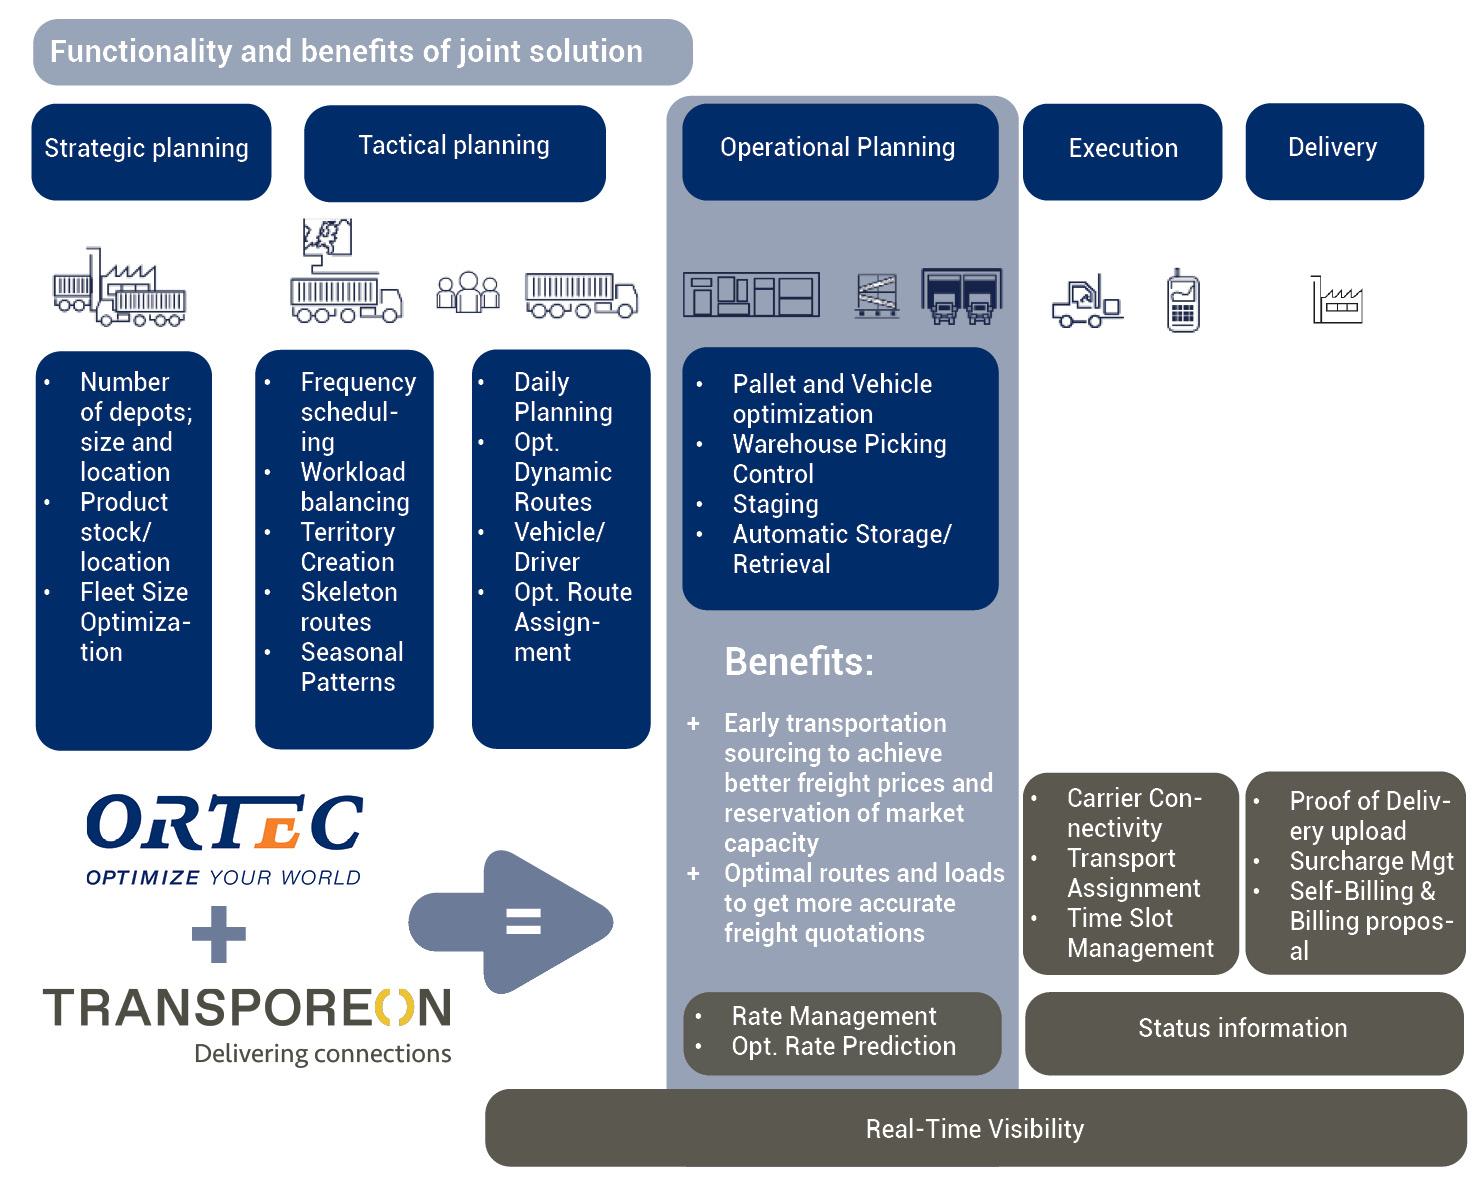 Transporeon partners with ORTEC to offer customers optimized truck-loading and routing solutions, for greater efficiency and reduced environmental impact